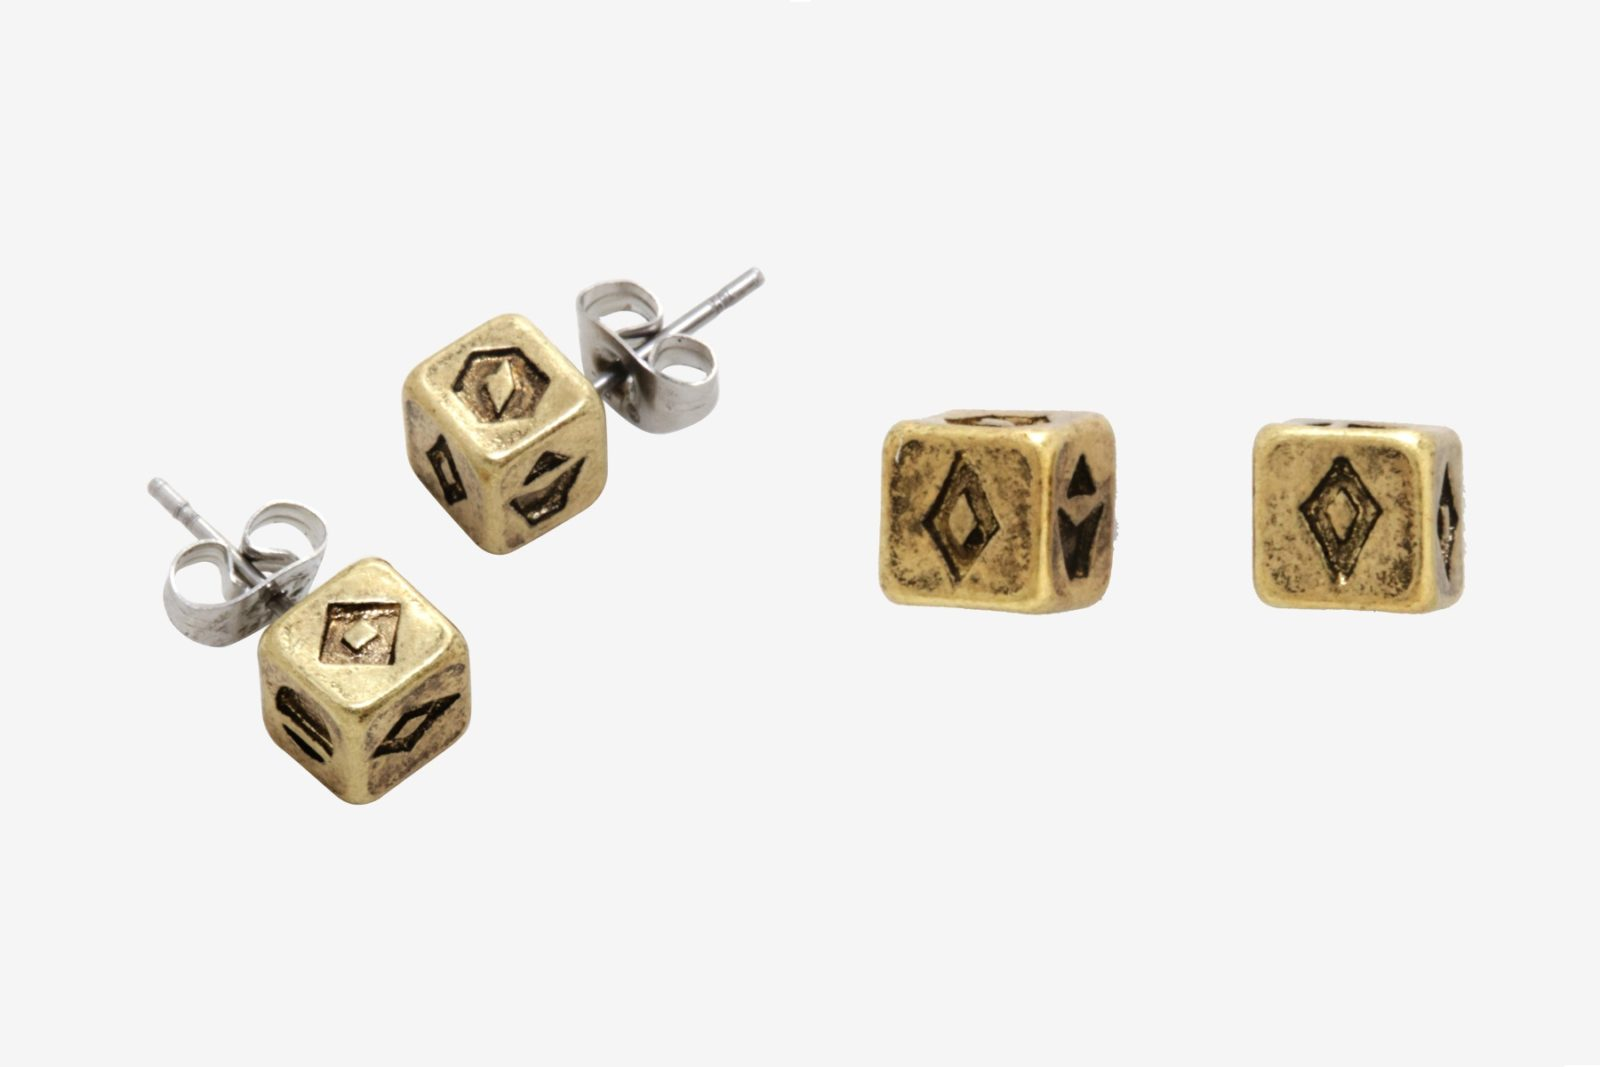 Box Lunch Exclusive Solo Dice Stud Earrings